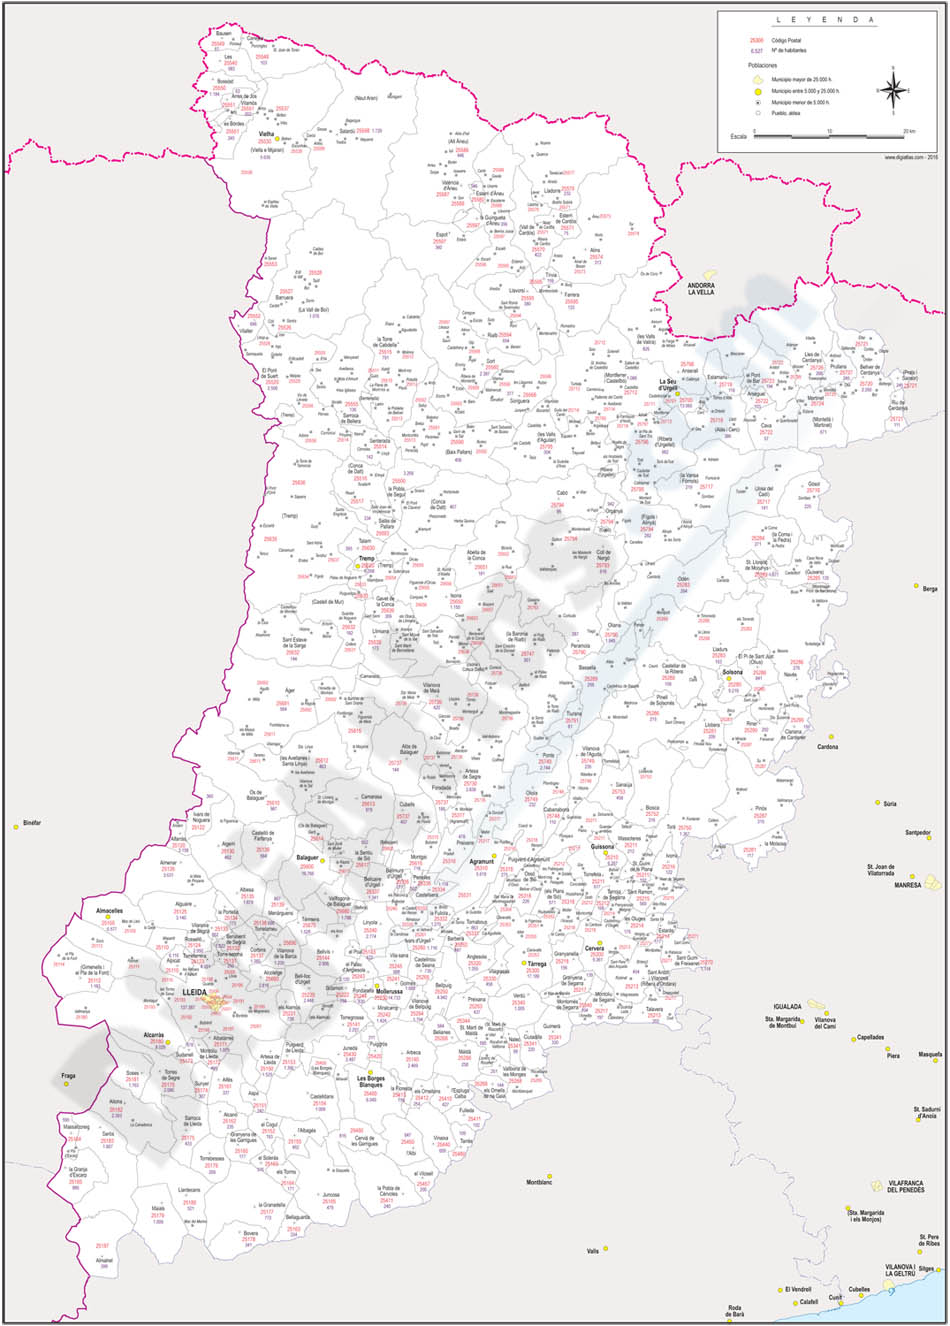 Lleida - province map with municipalities, postal codes and inhabitants